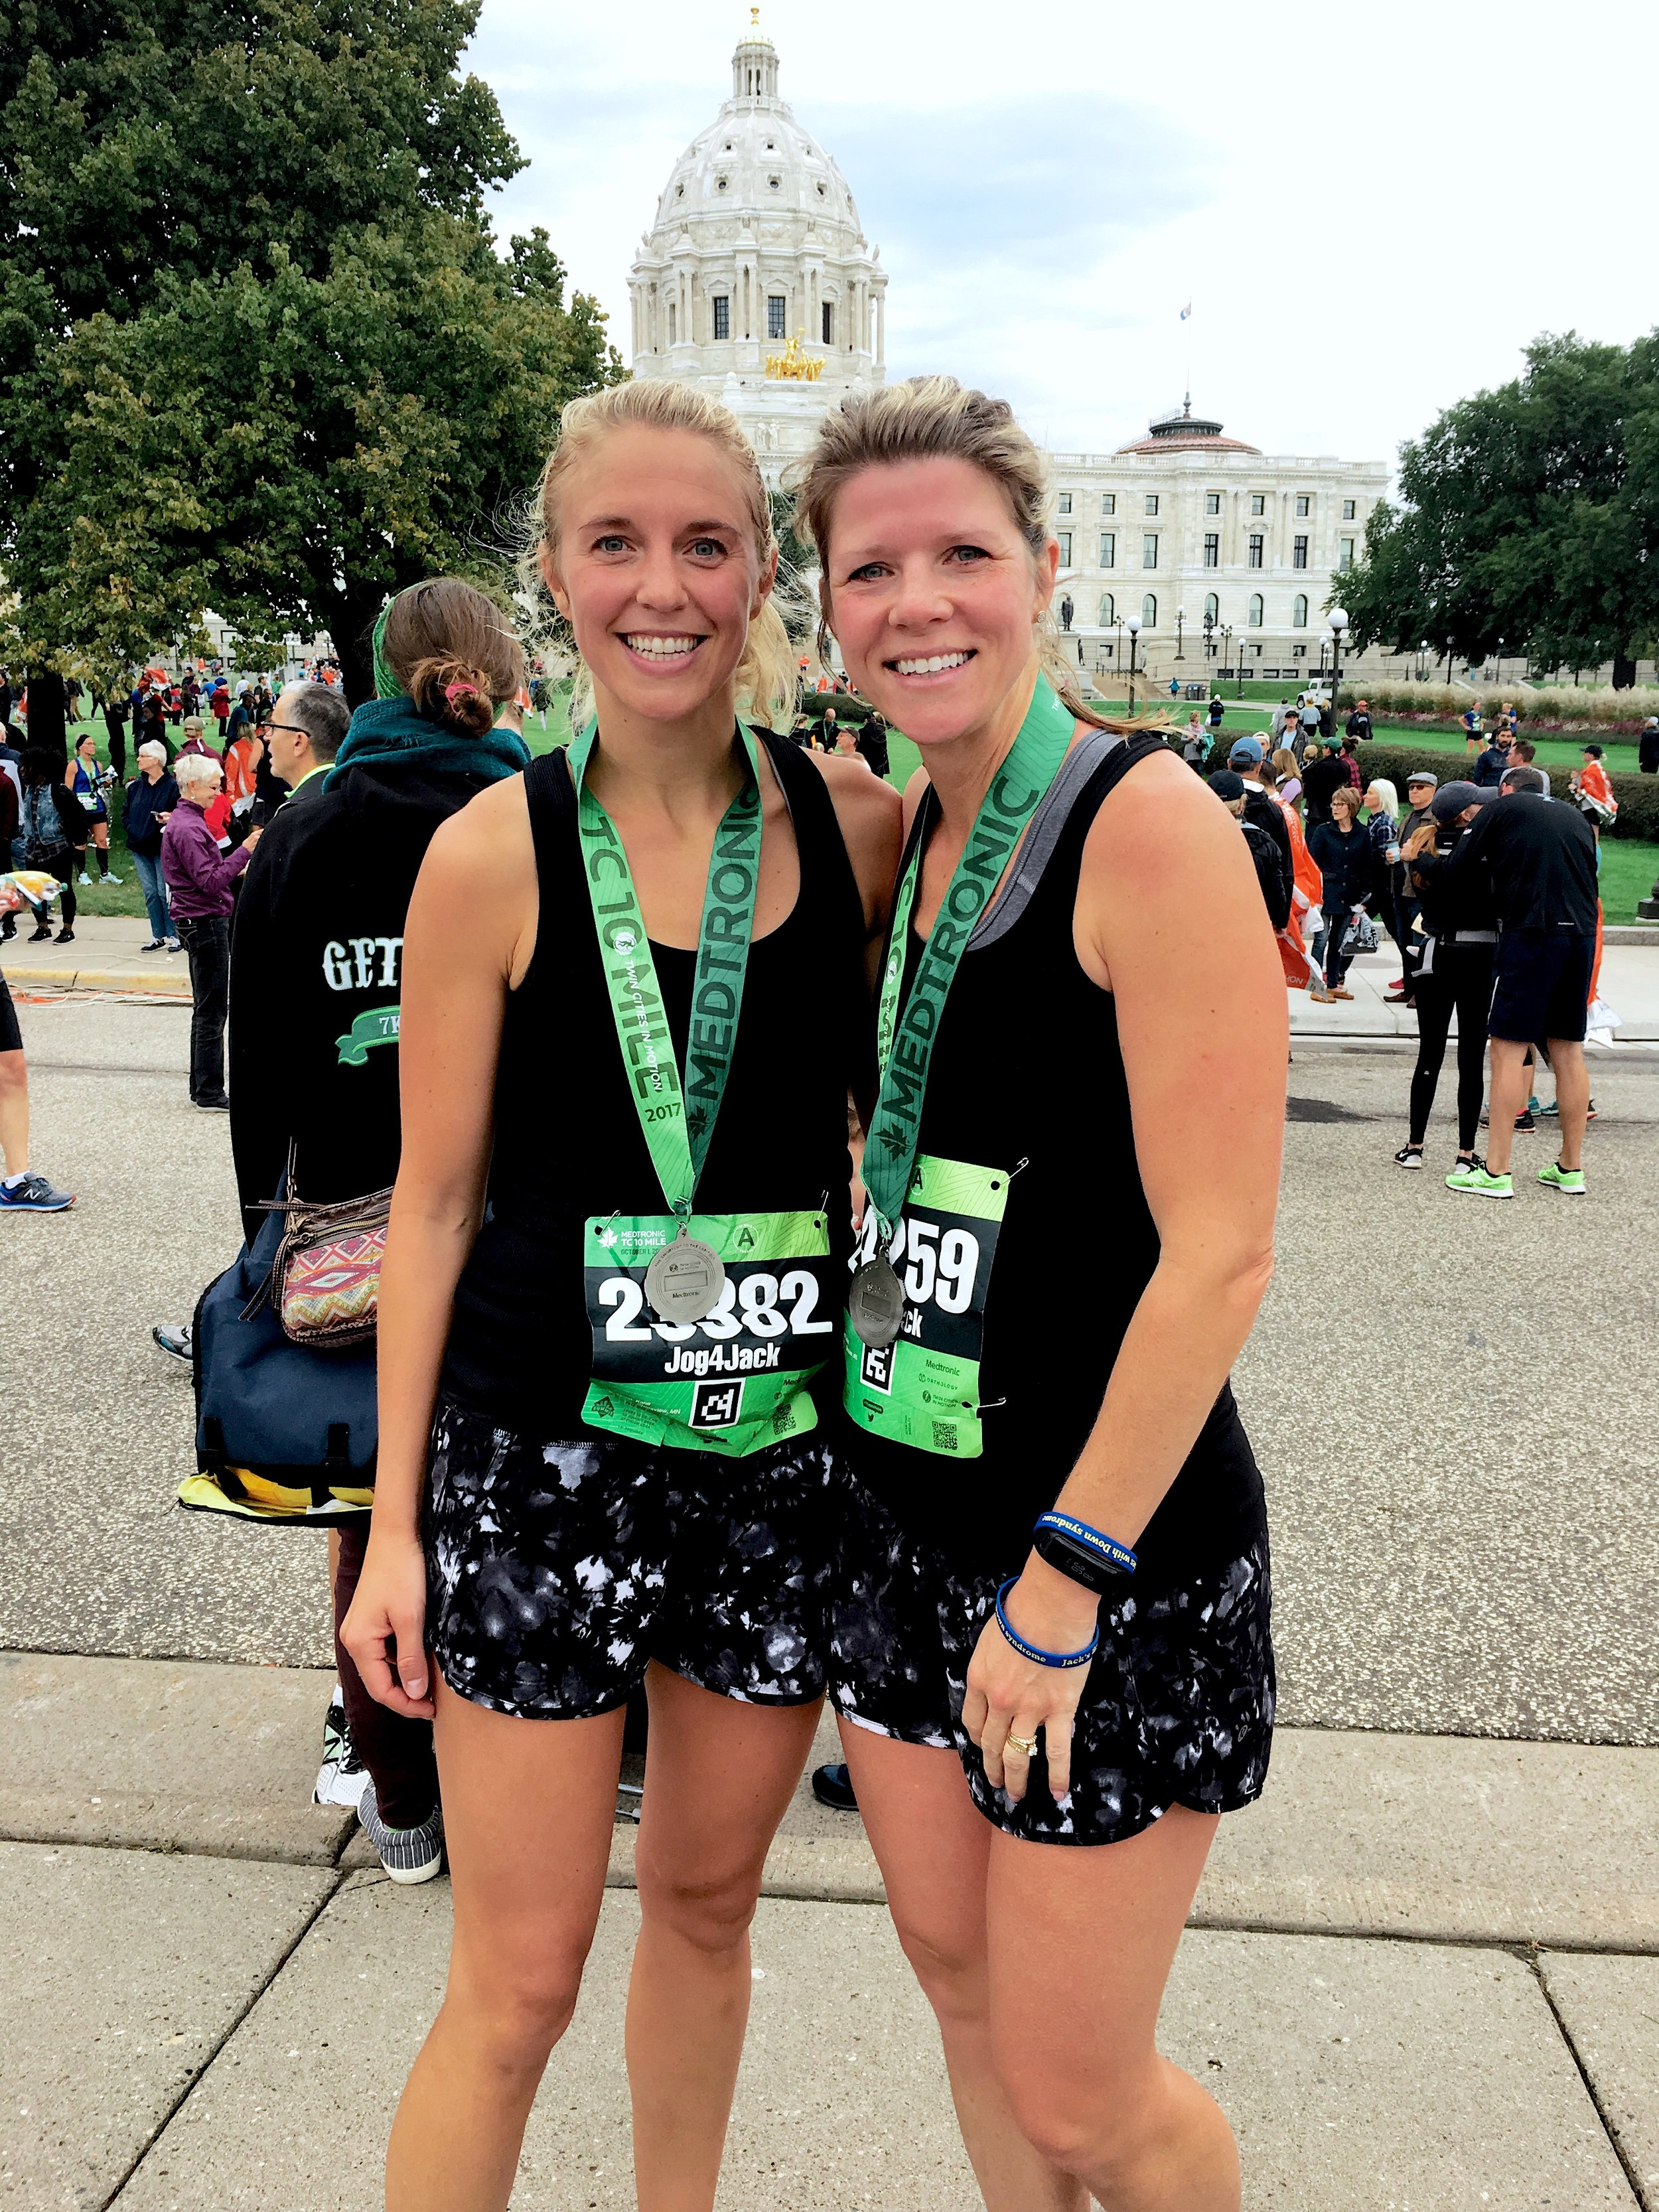 Katie Bjorklund, left, and Carissa Carroll, right, from the Medtronic Twin Cities 10 Mile Marathon in October of 2017.Photo courtesy of Katie Bjorklund